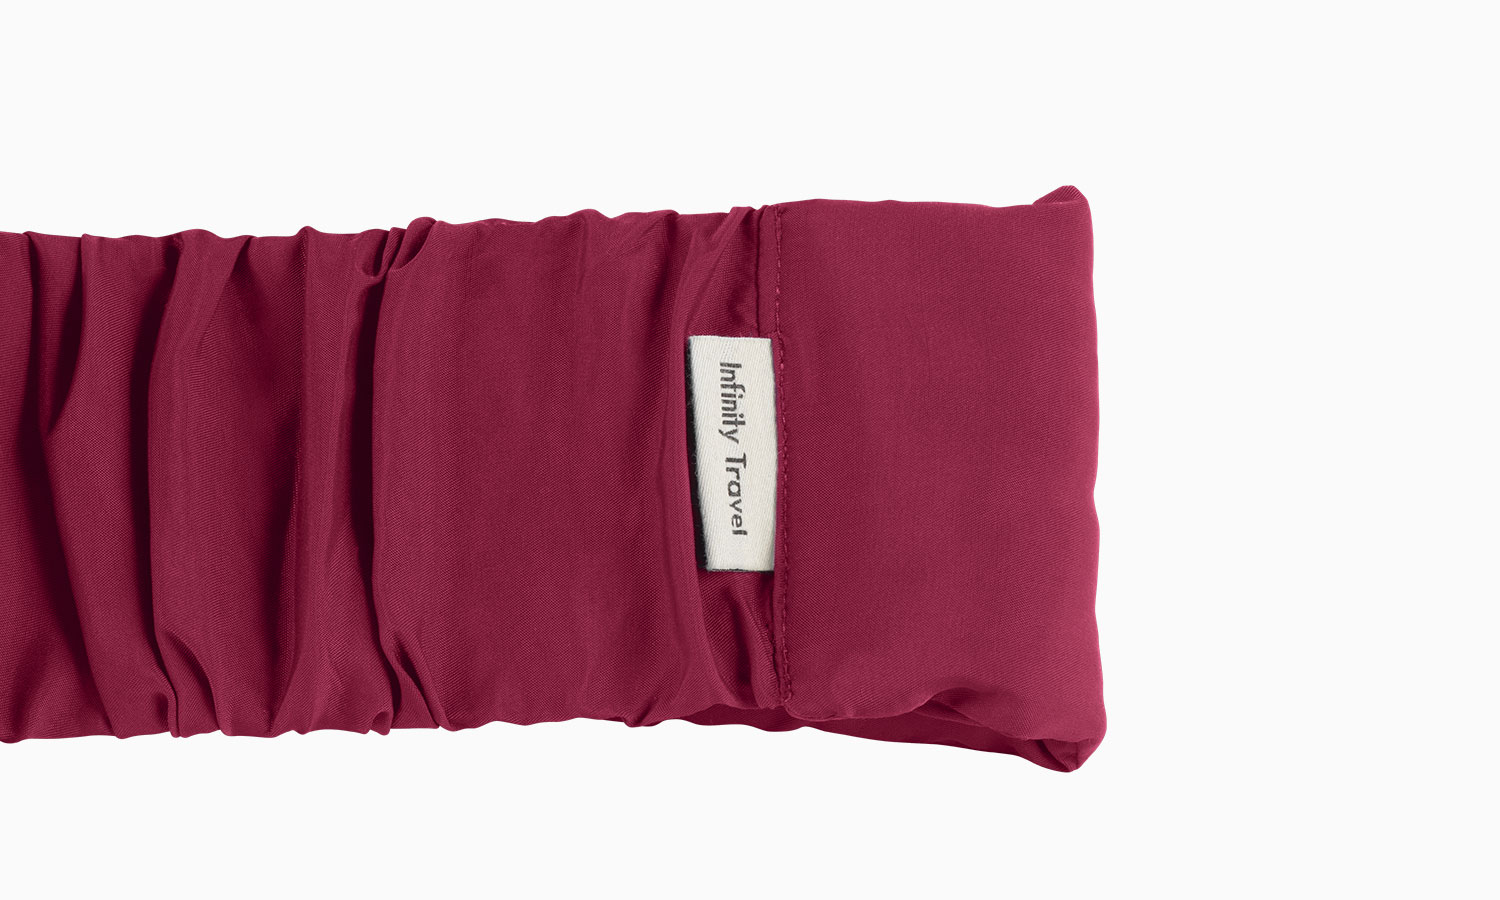 Wonder why the Infinity Pillow is fluffy, supportive and breathable? The secret lies in the thousands of layers of microfiber that intertwine and form air pockets.